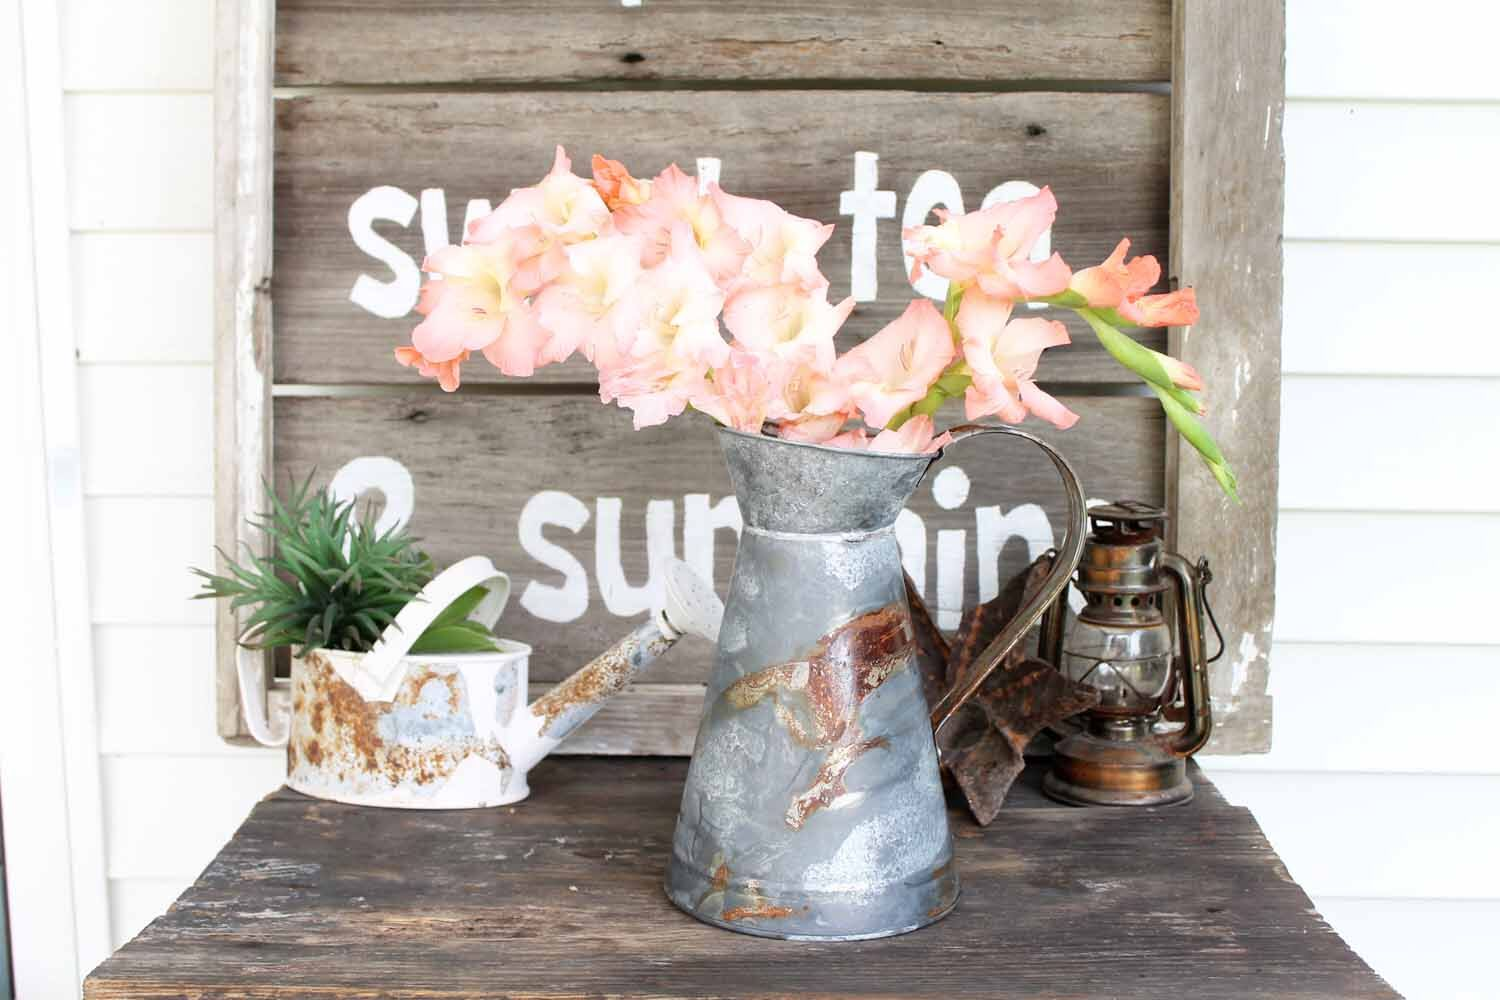 Farmhouse rustic floral container DIY